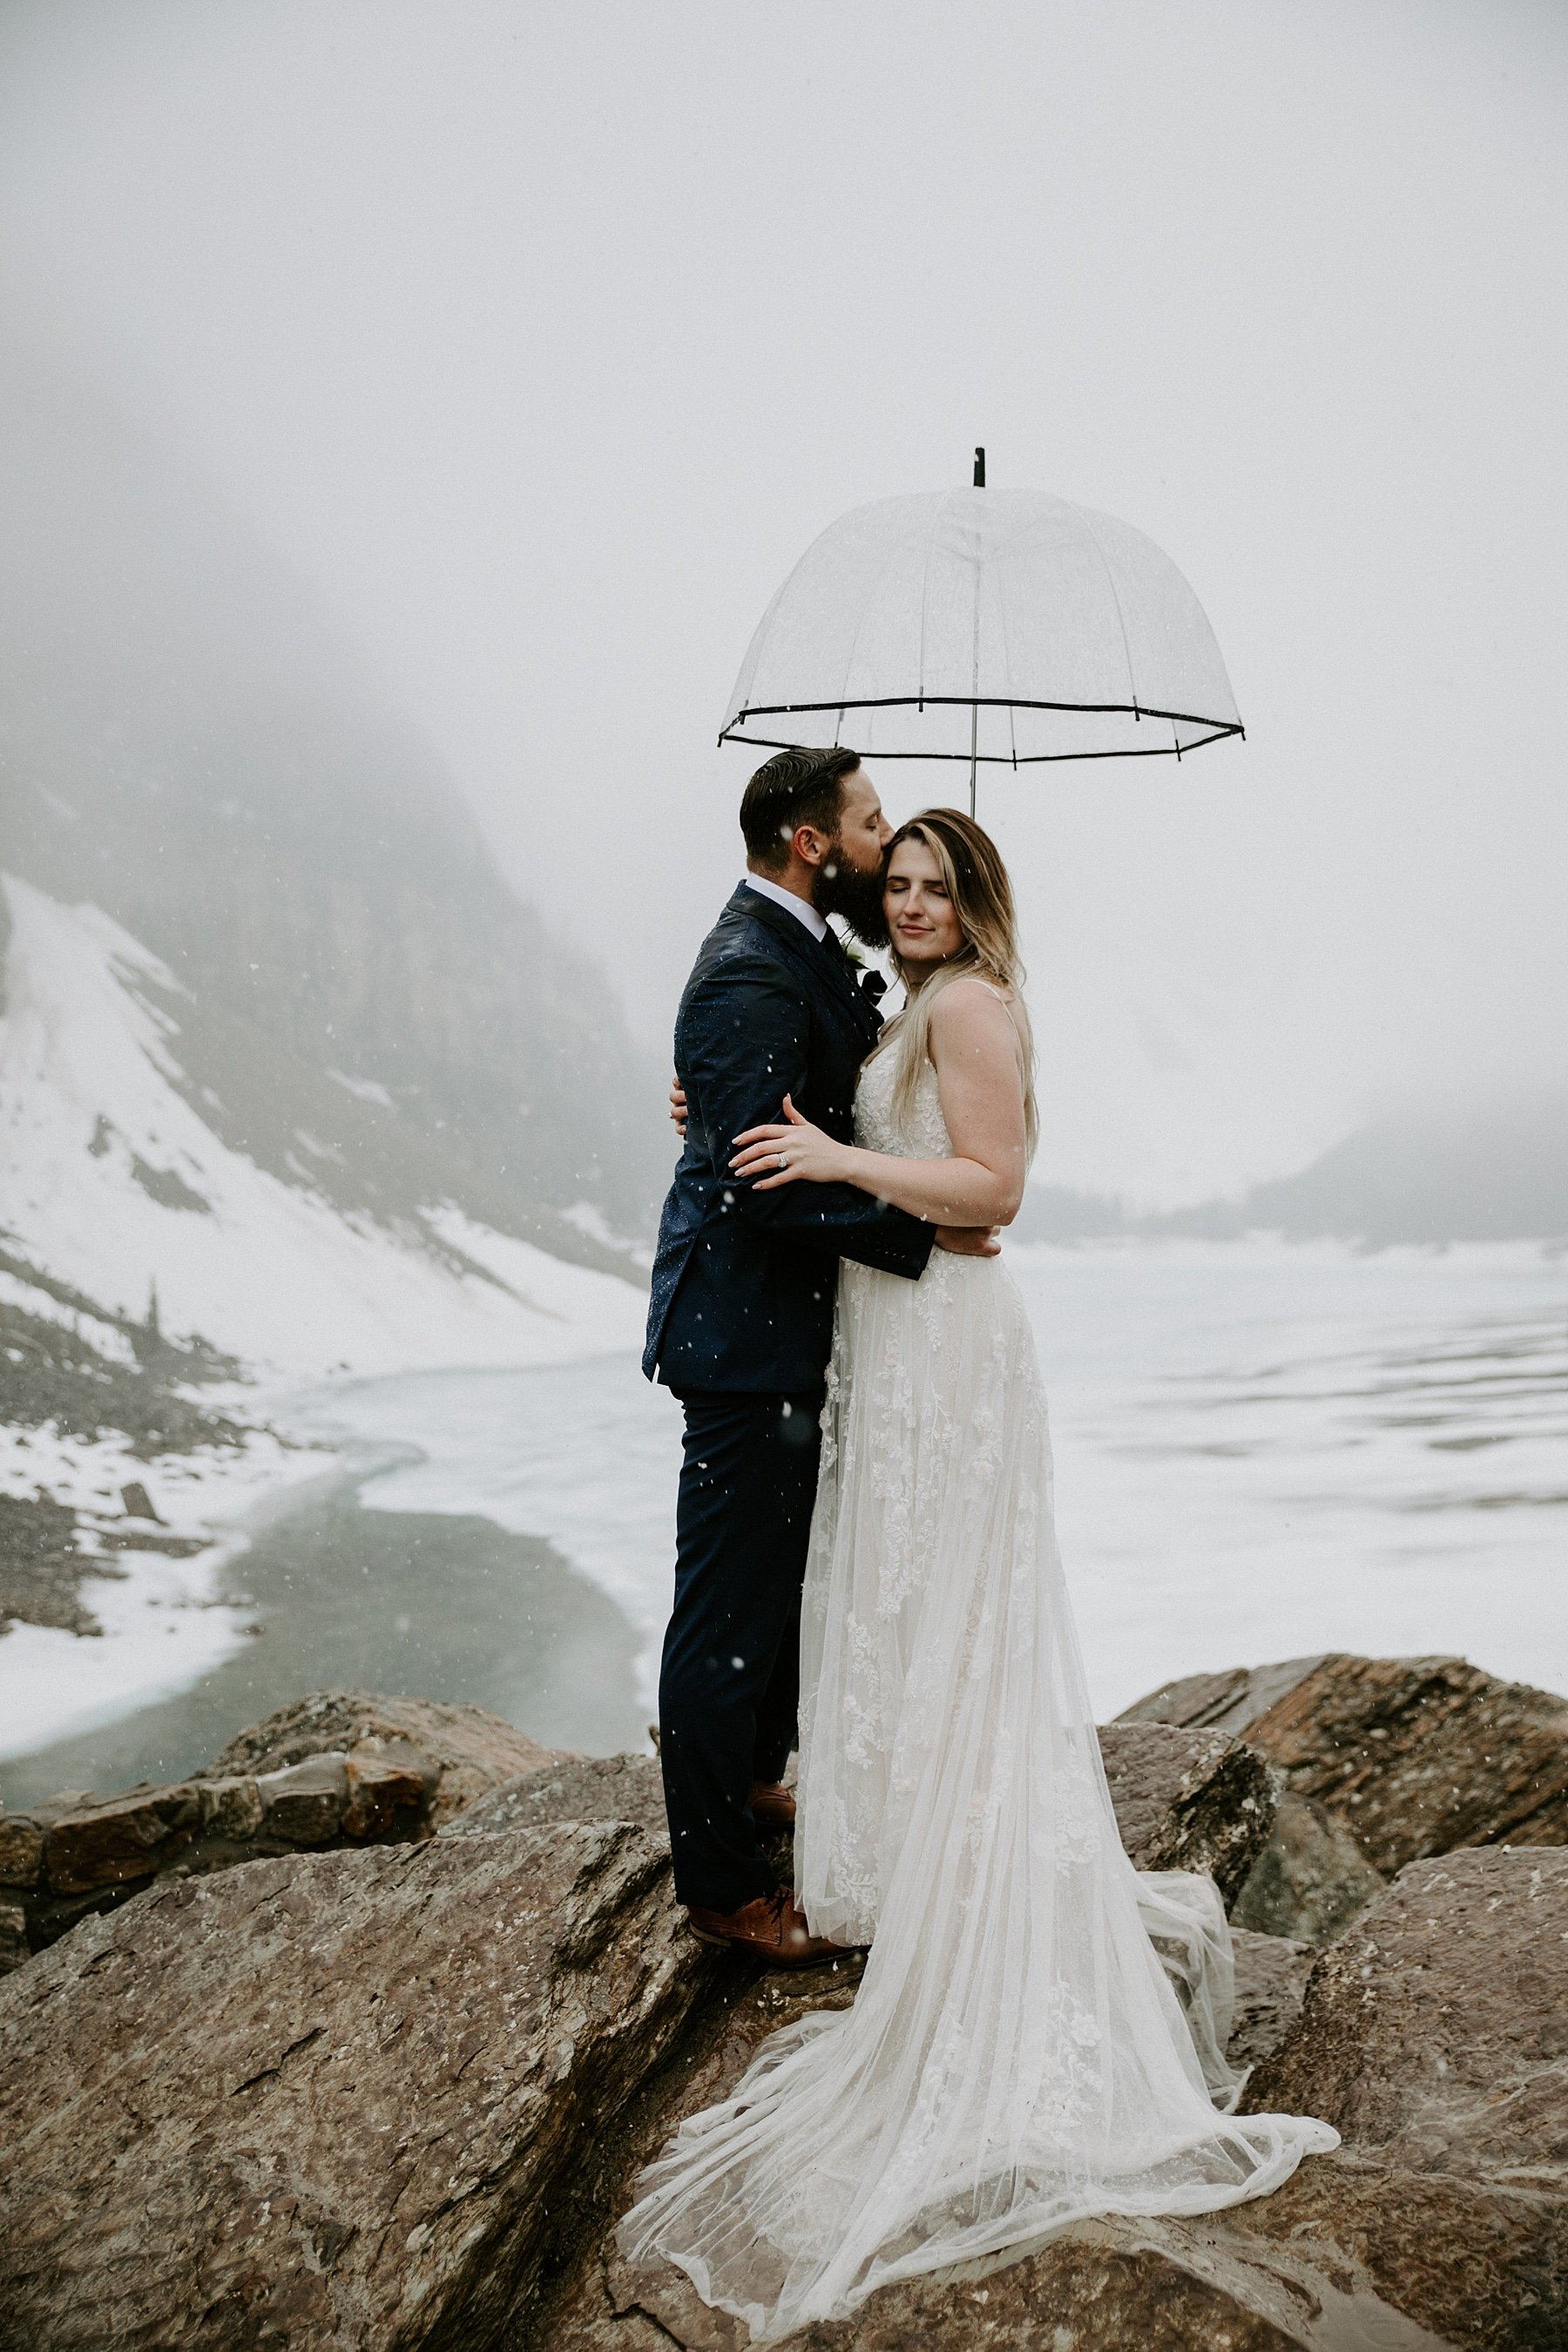 Moraine Lake wedding photos in the snow